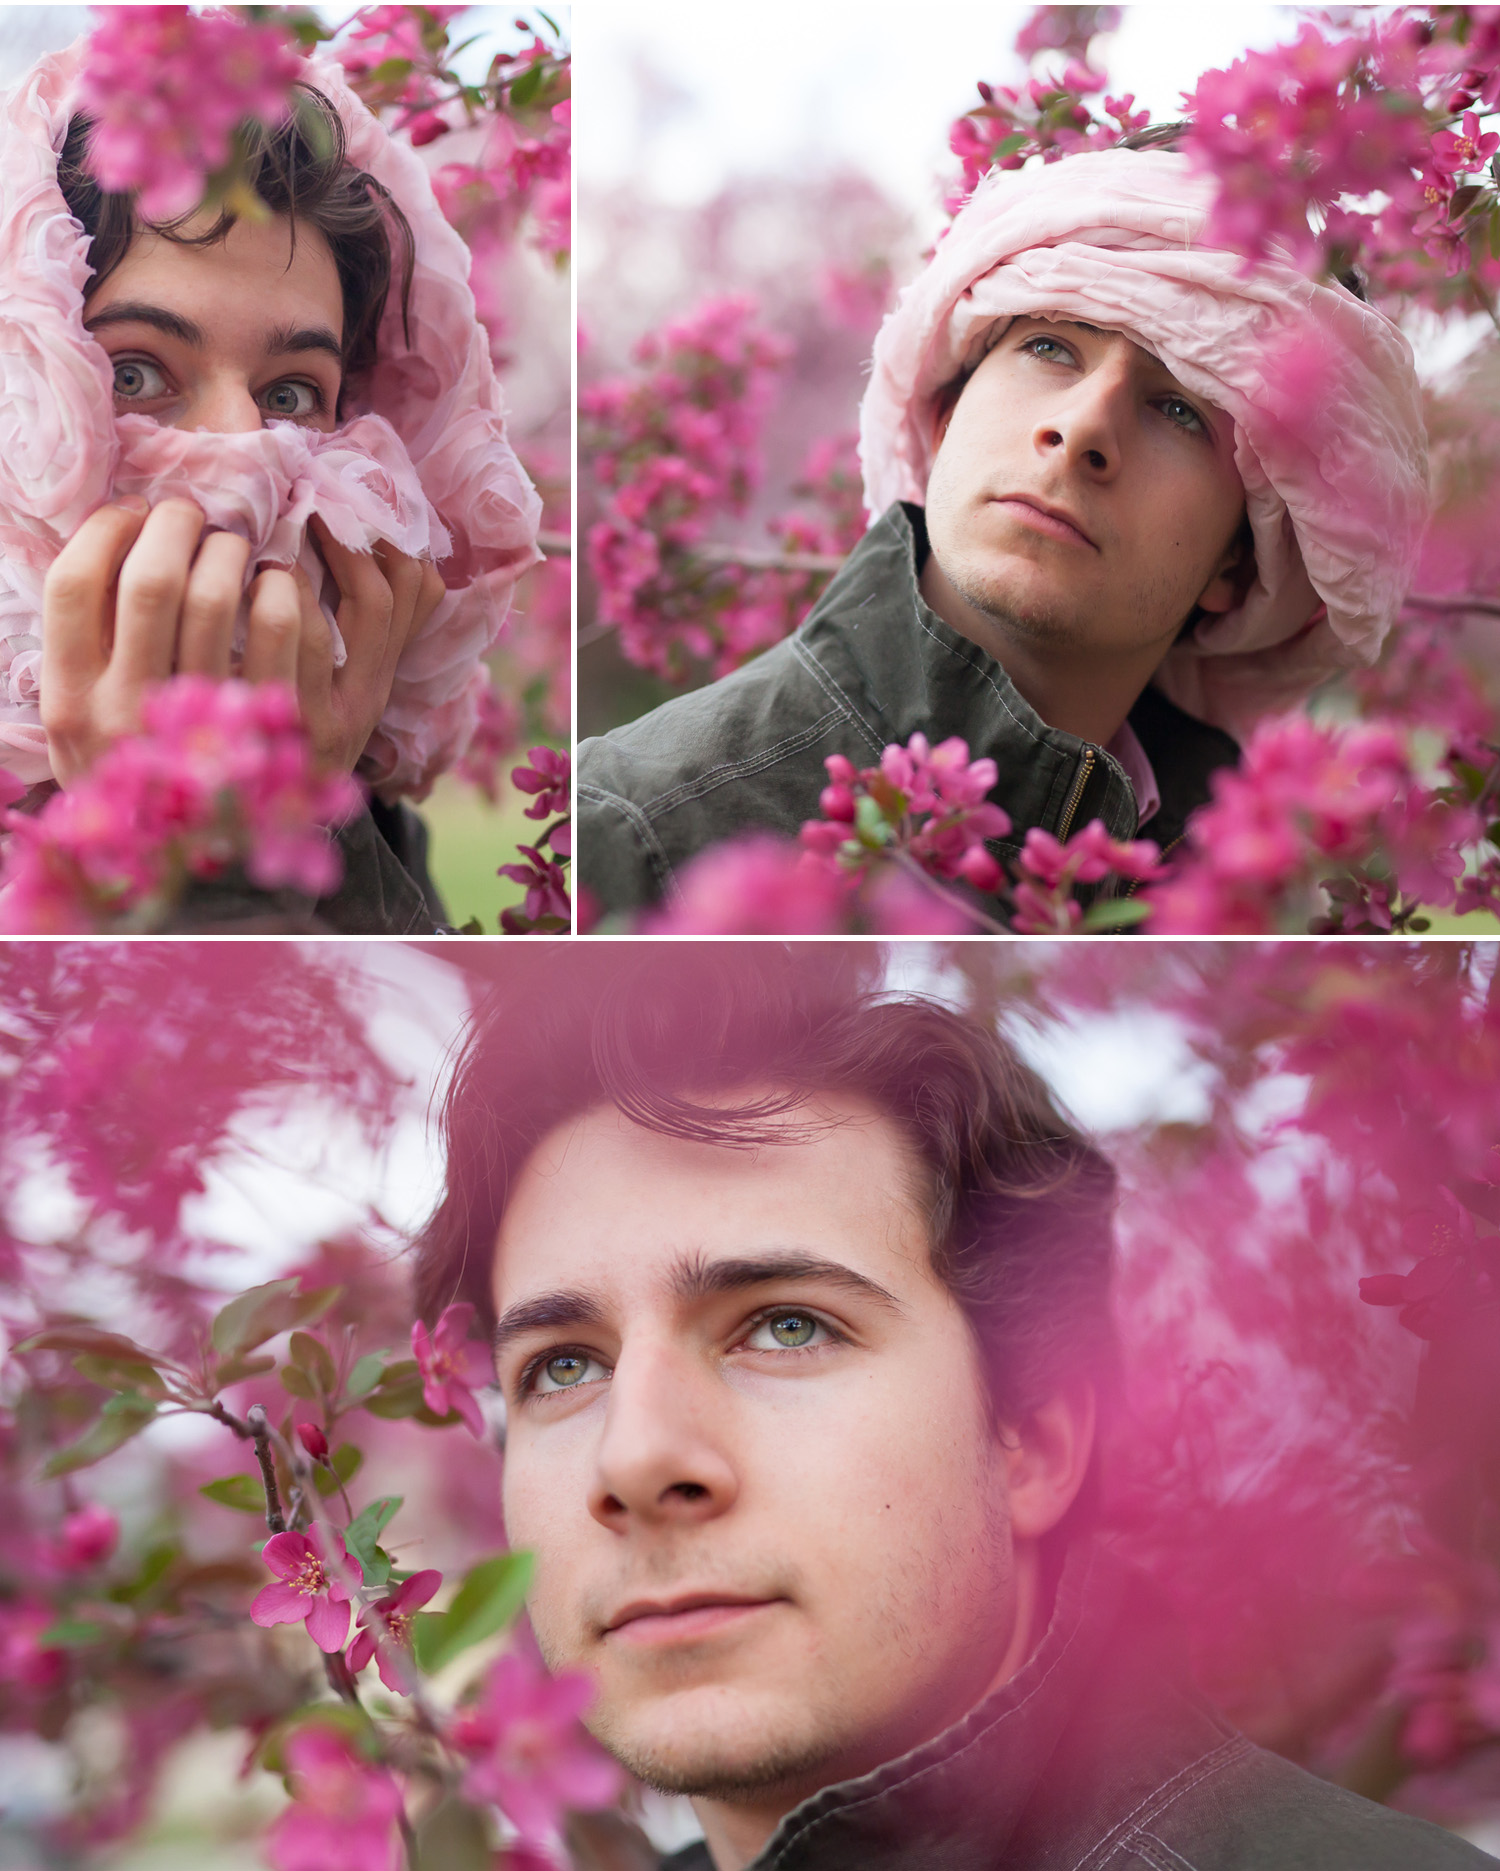 Young man playing for creative portraits in pink spring flowers, by Denver photographer Jennifer Koskinen, Merritt Portrait Studio